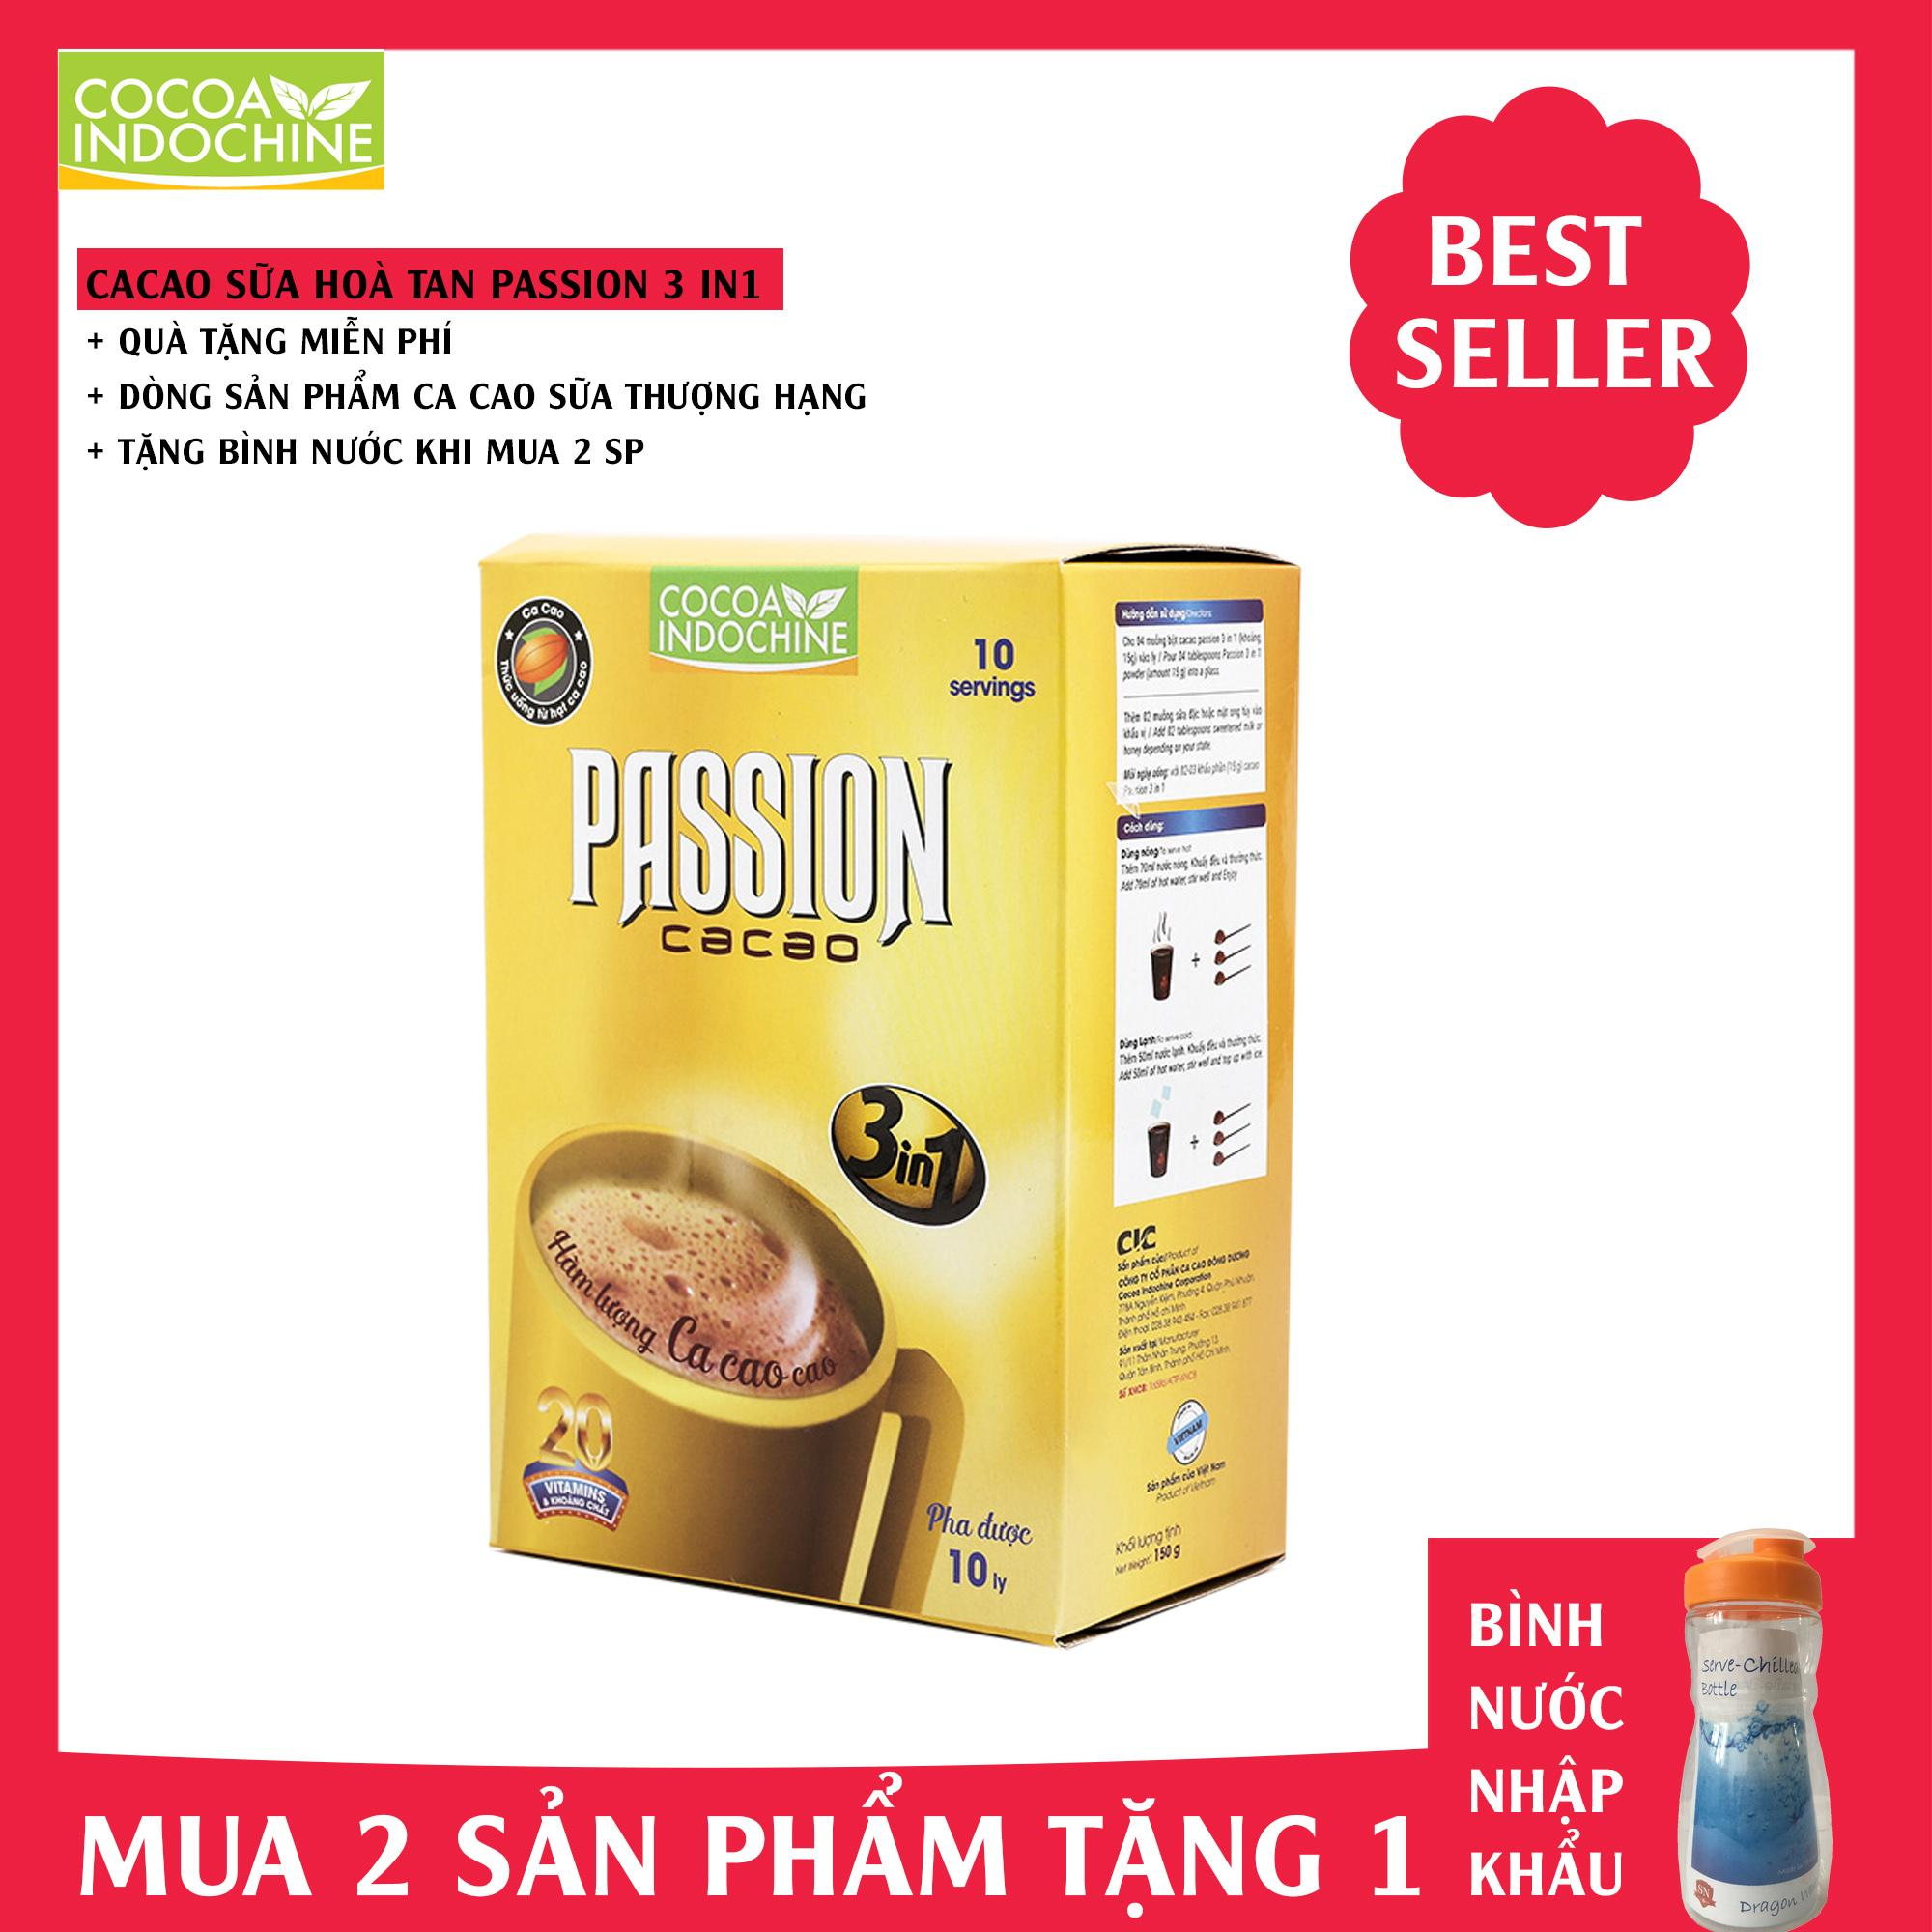 Bột Cacao sữa Passion 3 in 1 - Cocoa Indochine (hộp 150g)